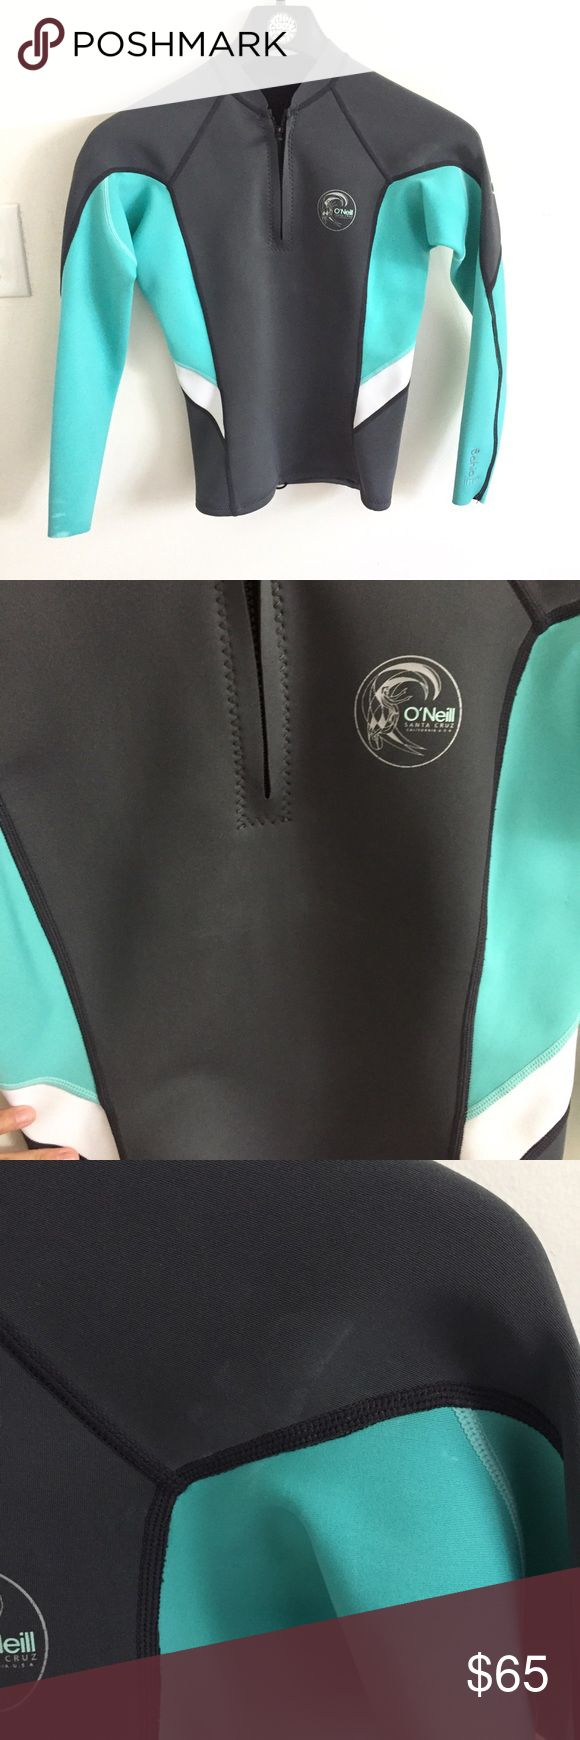 O'Neill wetsuit top Bahia 1 mm size 8 O'Neill wetsuit top Bahia 1 mm size 8- make offer. Great summer spring wetsuit, used in Hawaii a few times. Drawstring bottom, some sunscreen marks on sleeves and above logo. Surfing paddle boarding sup spring suit swim O'Neill Swim